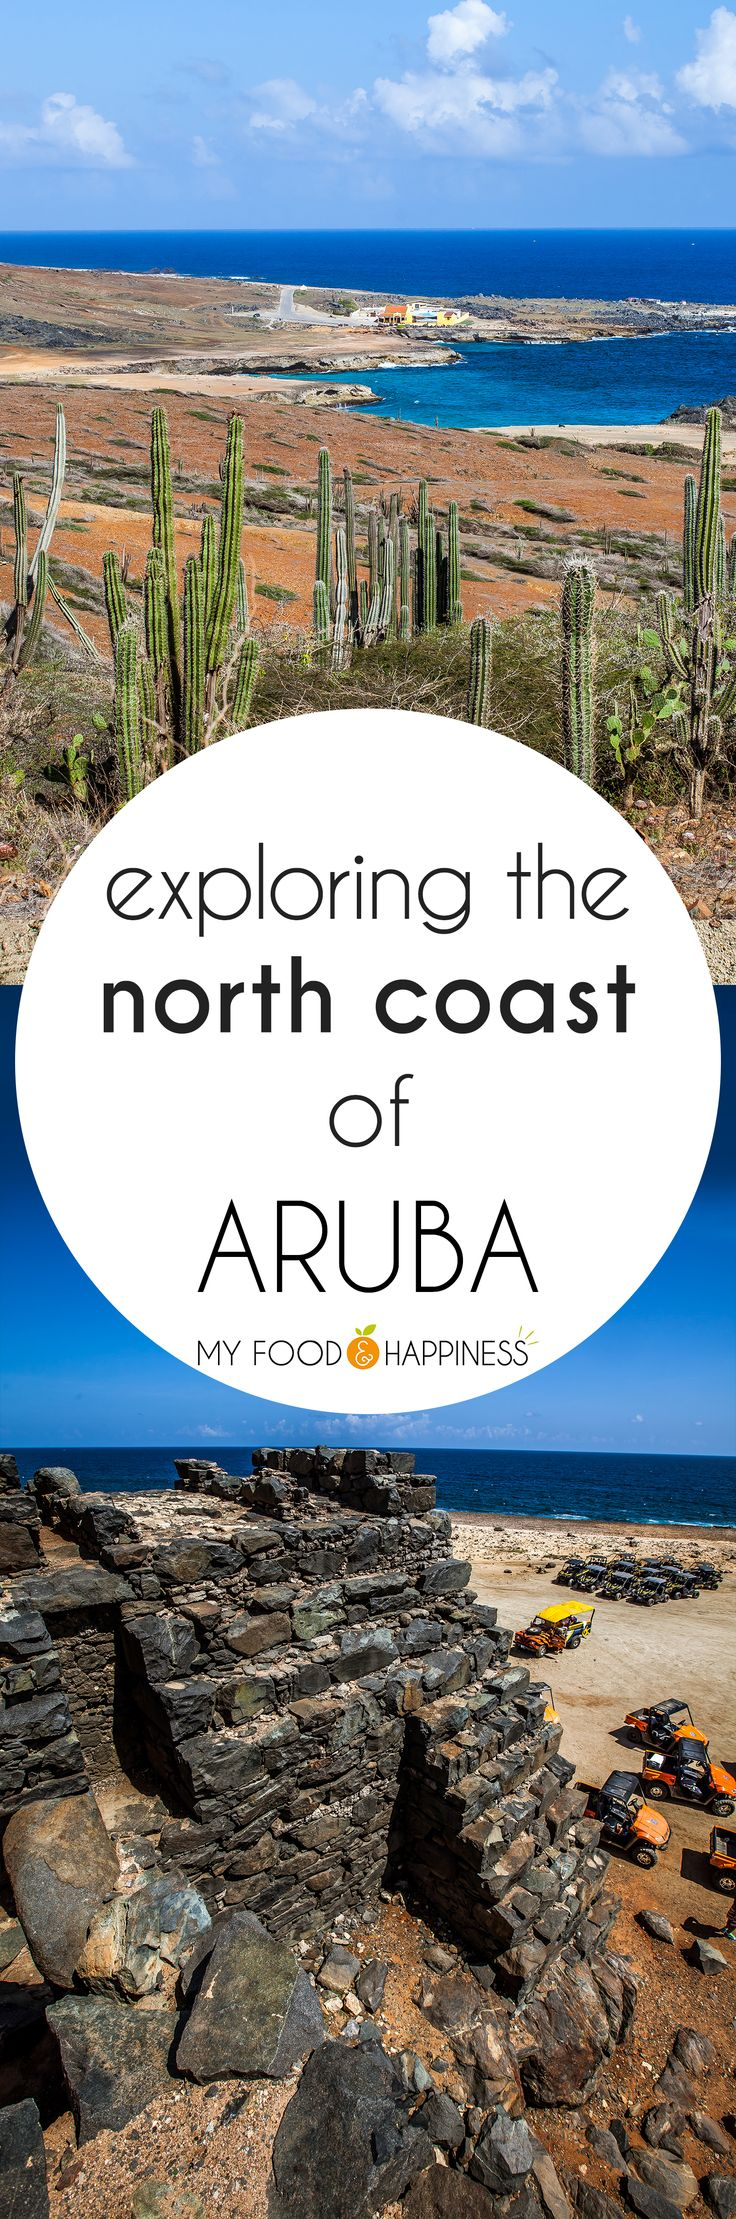 An adventurous tour across Aruba's north coast, exploring the desert scenery of the island. Boca natural pool, Bushiribana gold mines and the best snorkelling beach in Aruba are some of the stops of our tour.